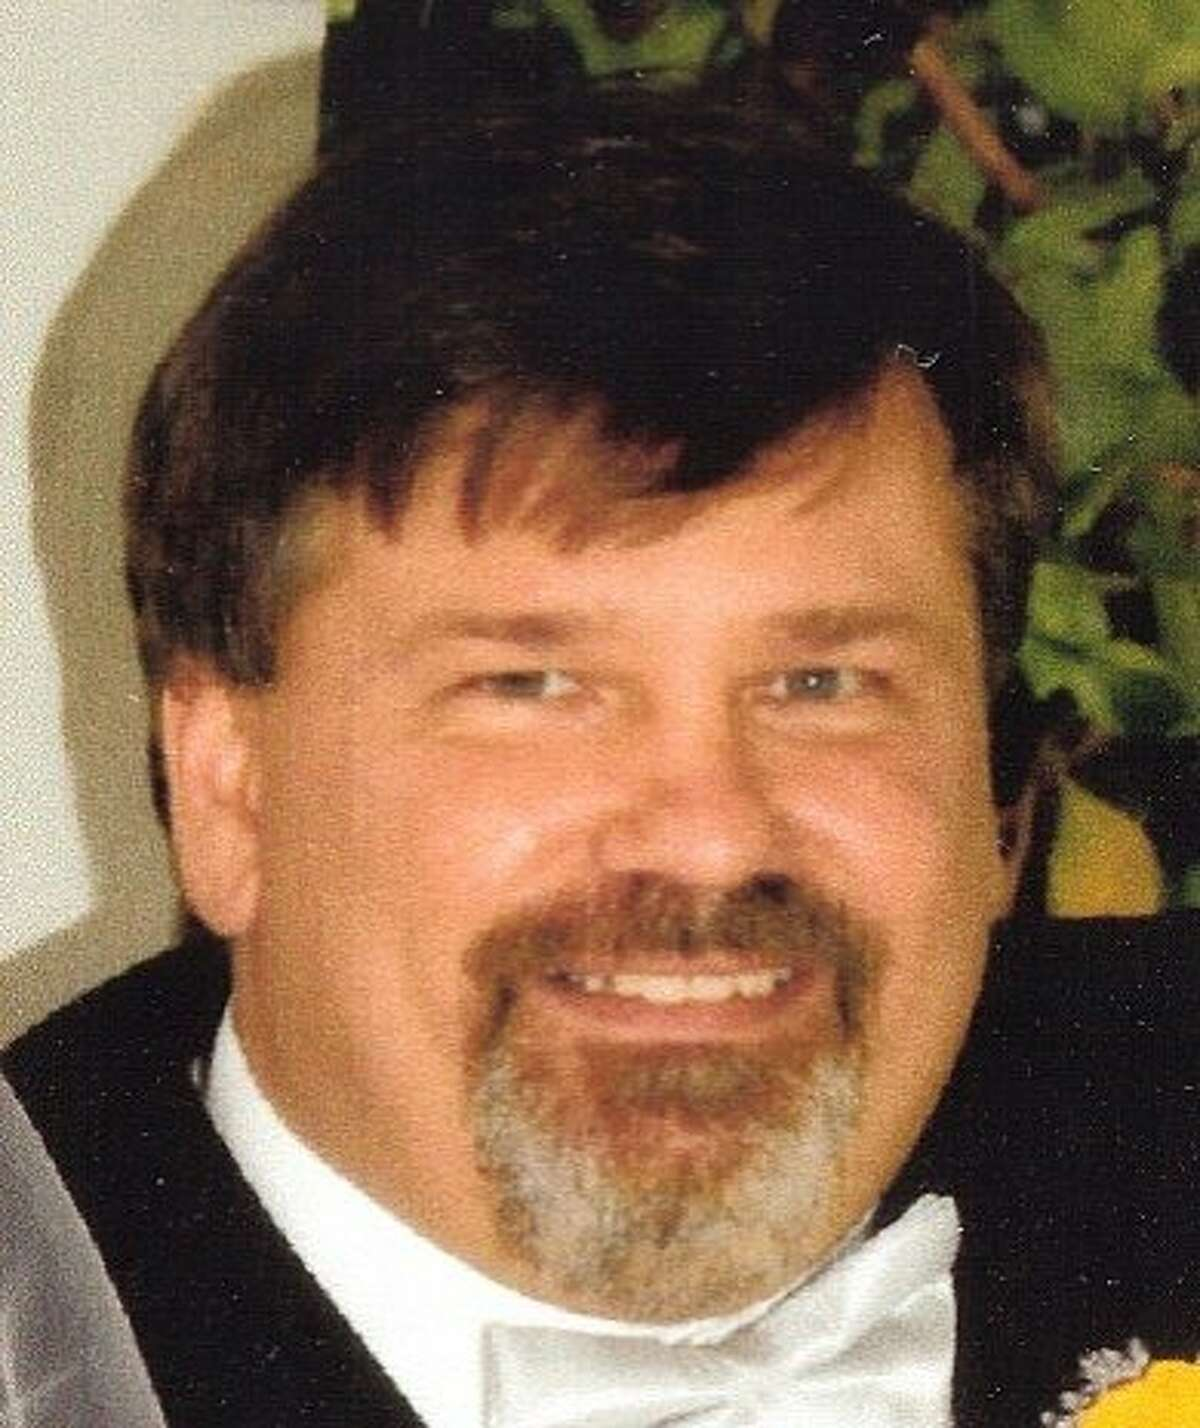 James Strickland, a track inspector for BART, was struck and killed by a train on October 14, 2008 in Concord, Calif. The train was traveling in the opposite direction than it usually would and hit Strickland from behind.